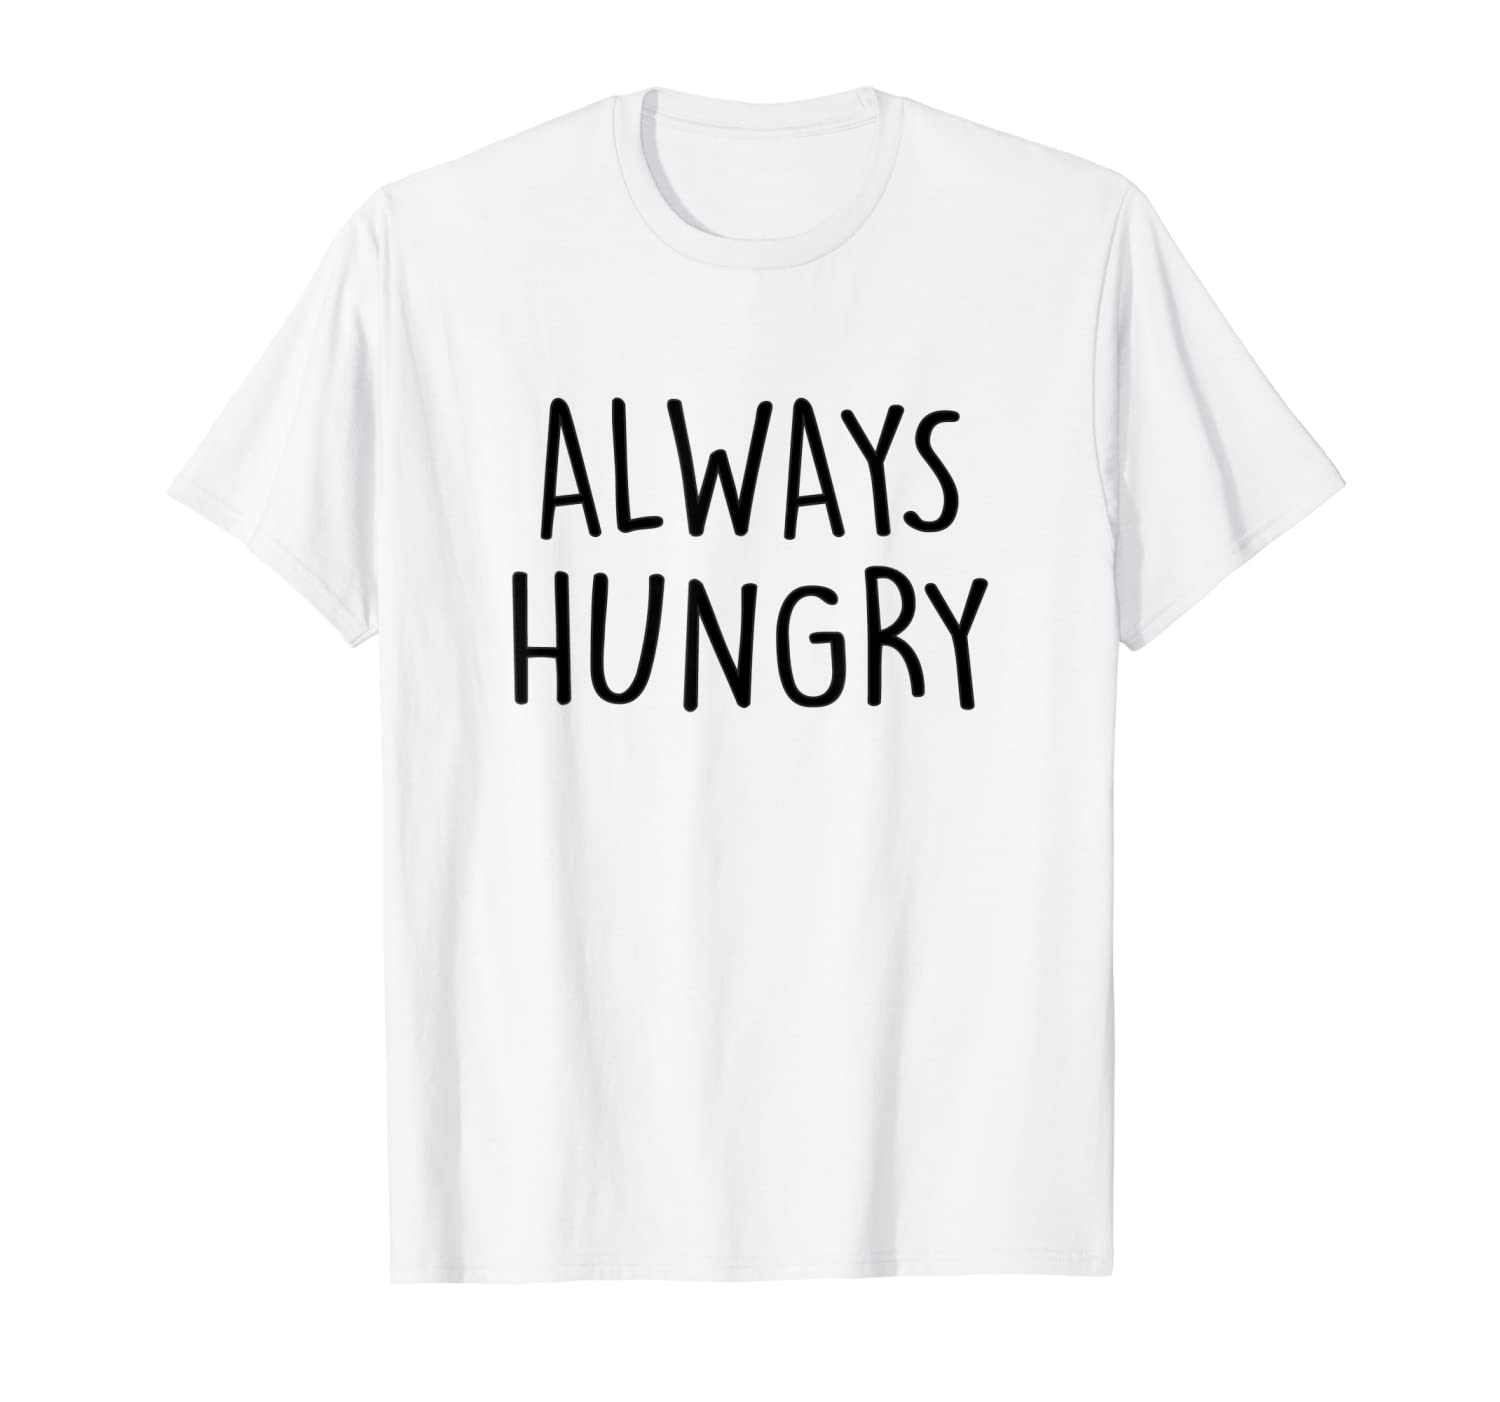 Amazon.com: Always Hungry Shirt Funny Saying Quote T-Shirt ...